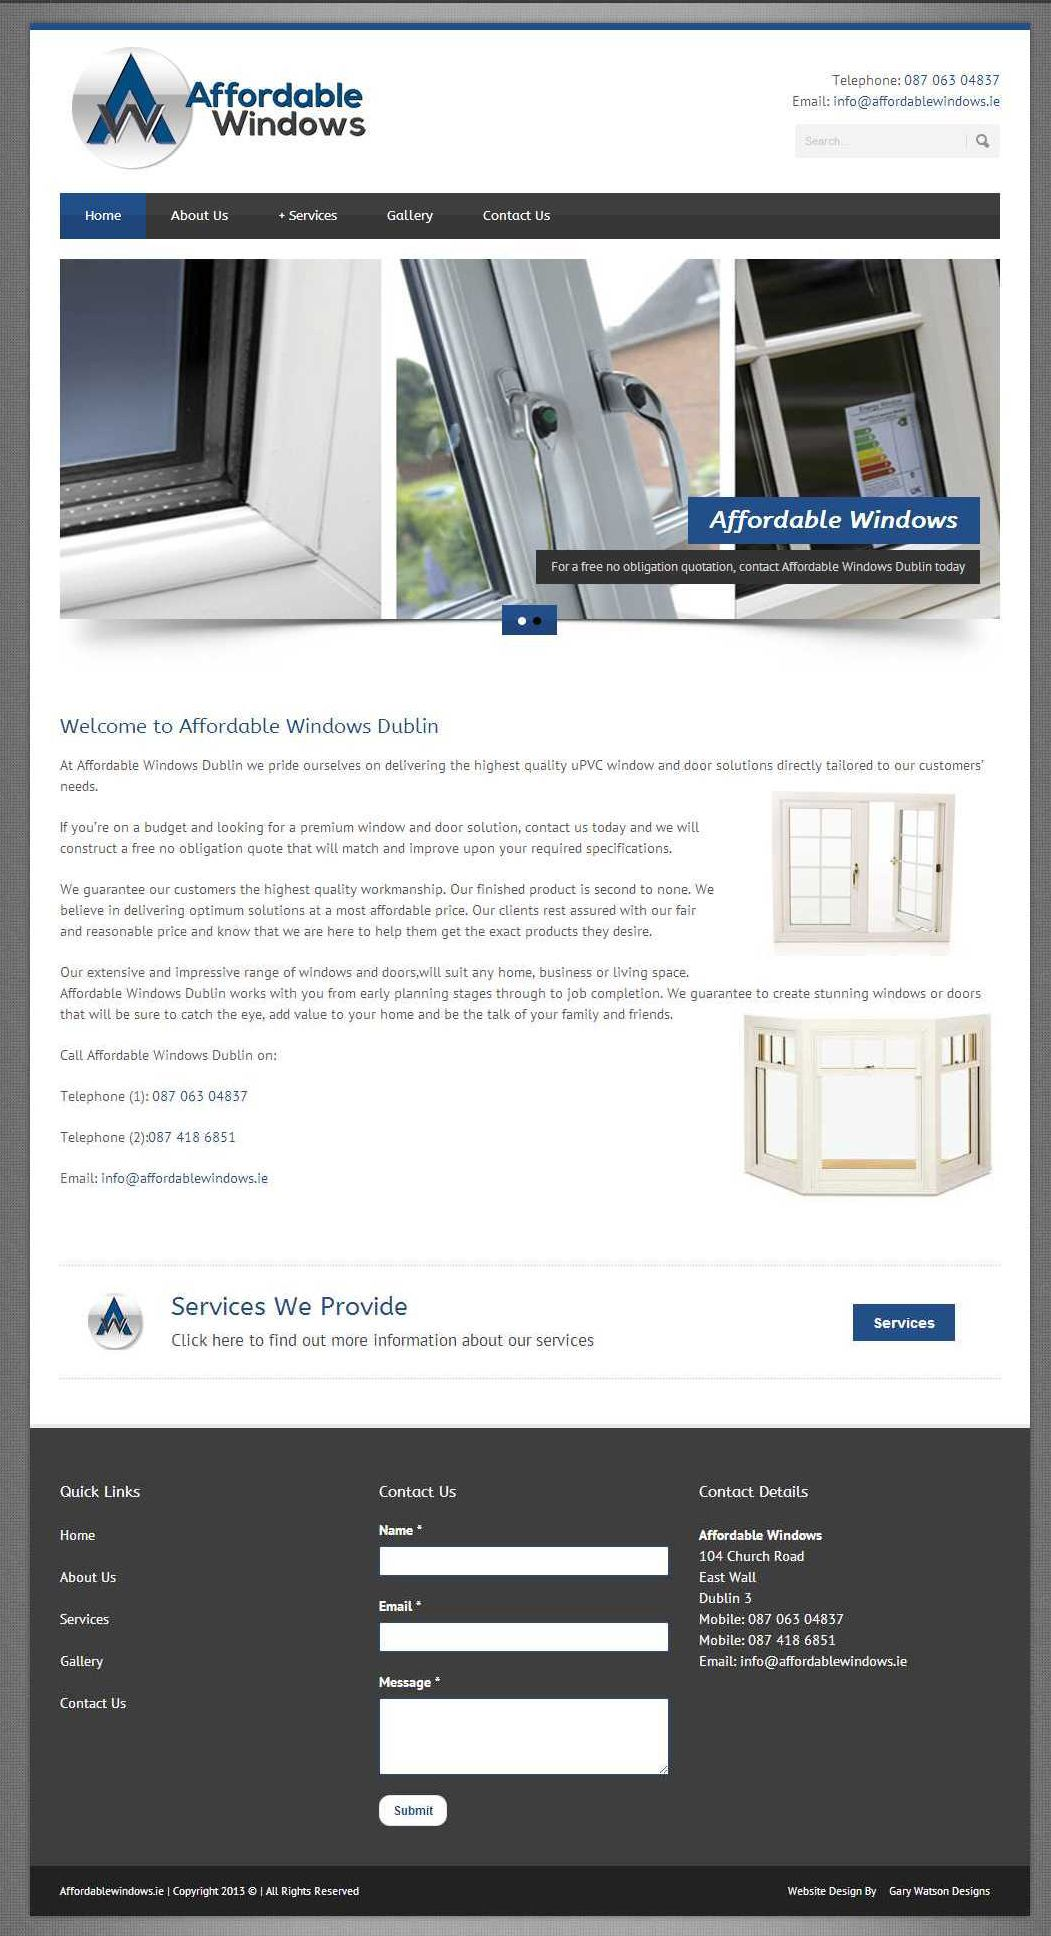 Affordable Windows Company Www Affordablewindows Ie Affordable Windows Affordable Websites Windows